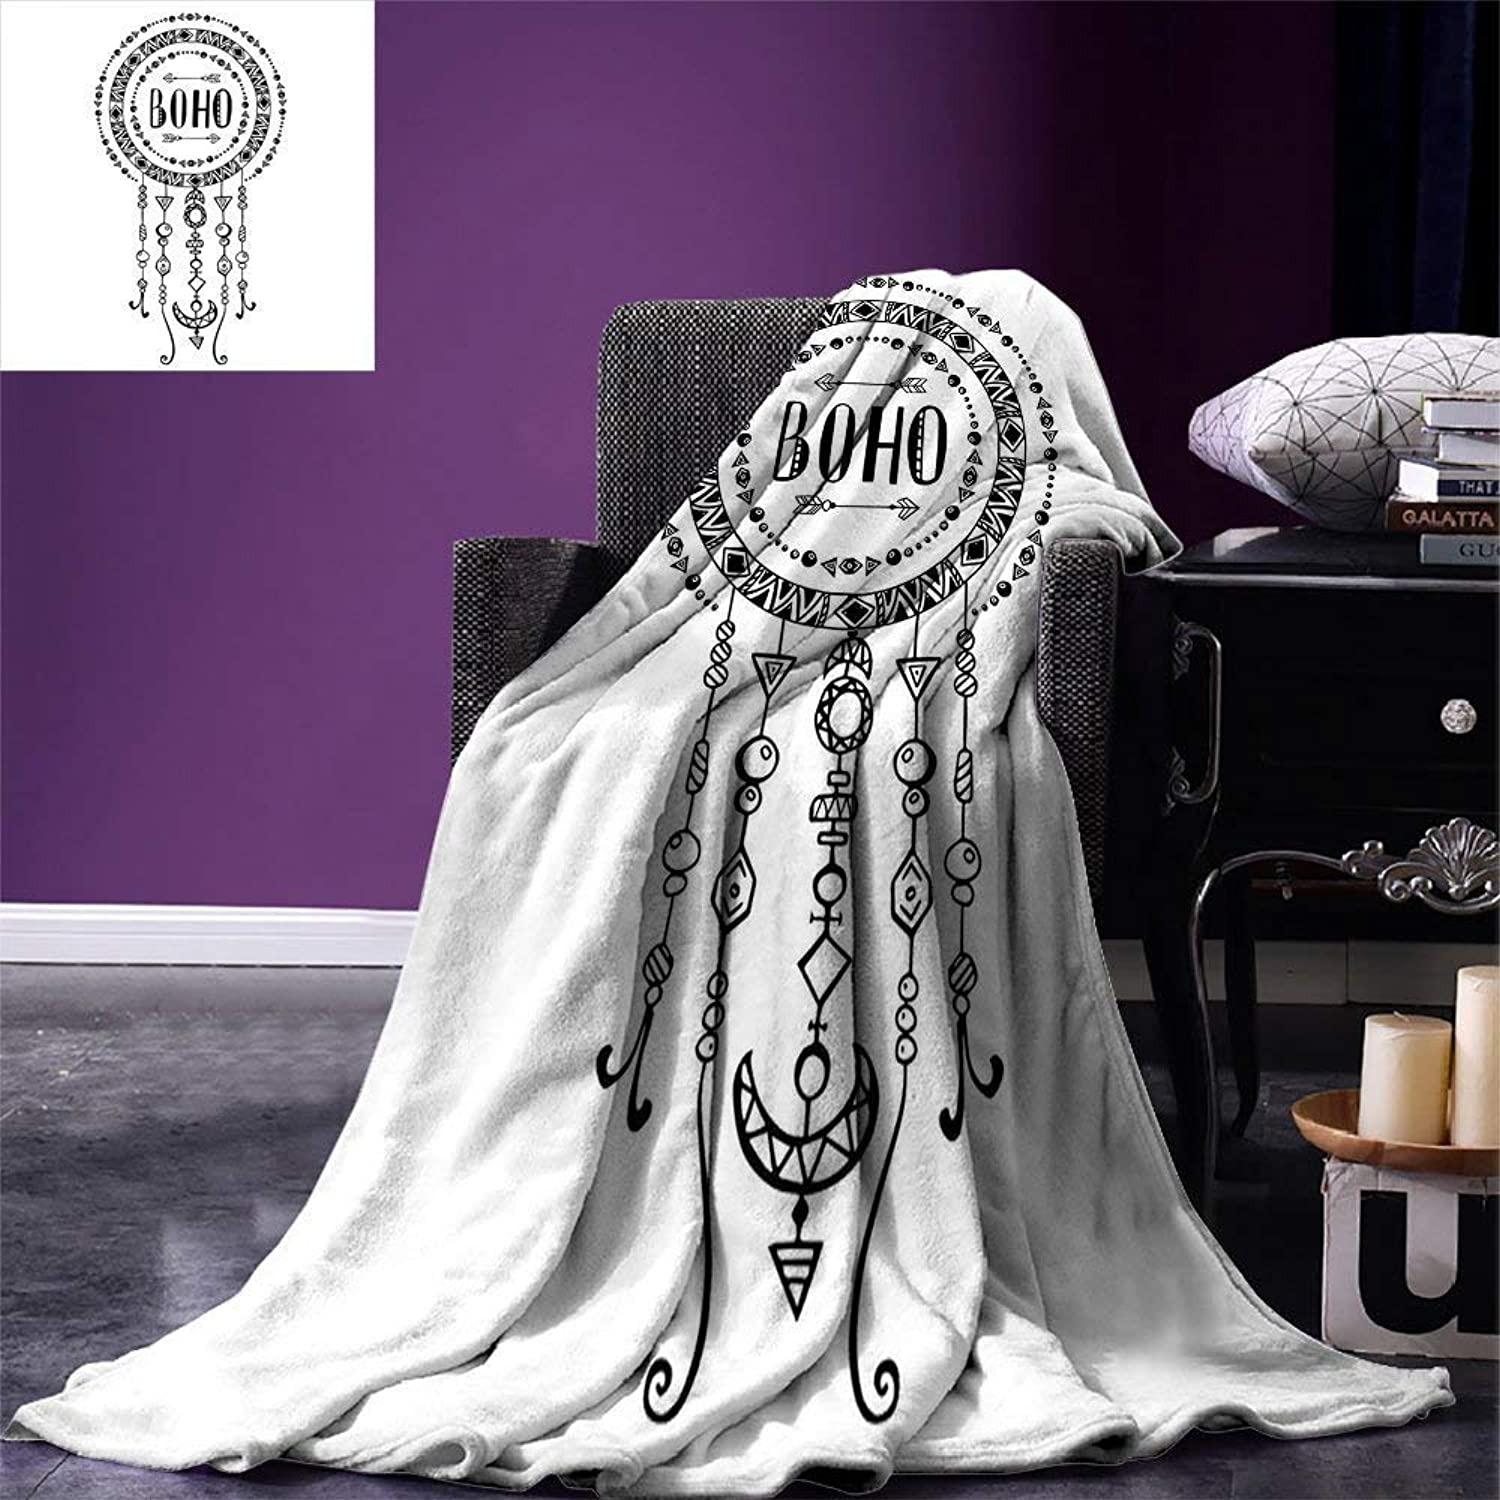 VAMIX Native American Throw Blanket Minimalist Boho Native American Form Ethnic Tribal Folkloric Image Velvet Plush Throw Blanket Black White, Blanket